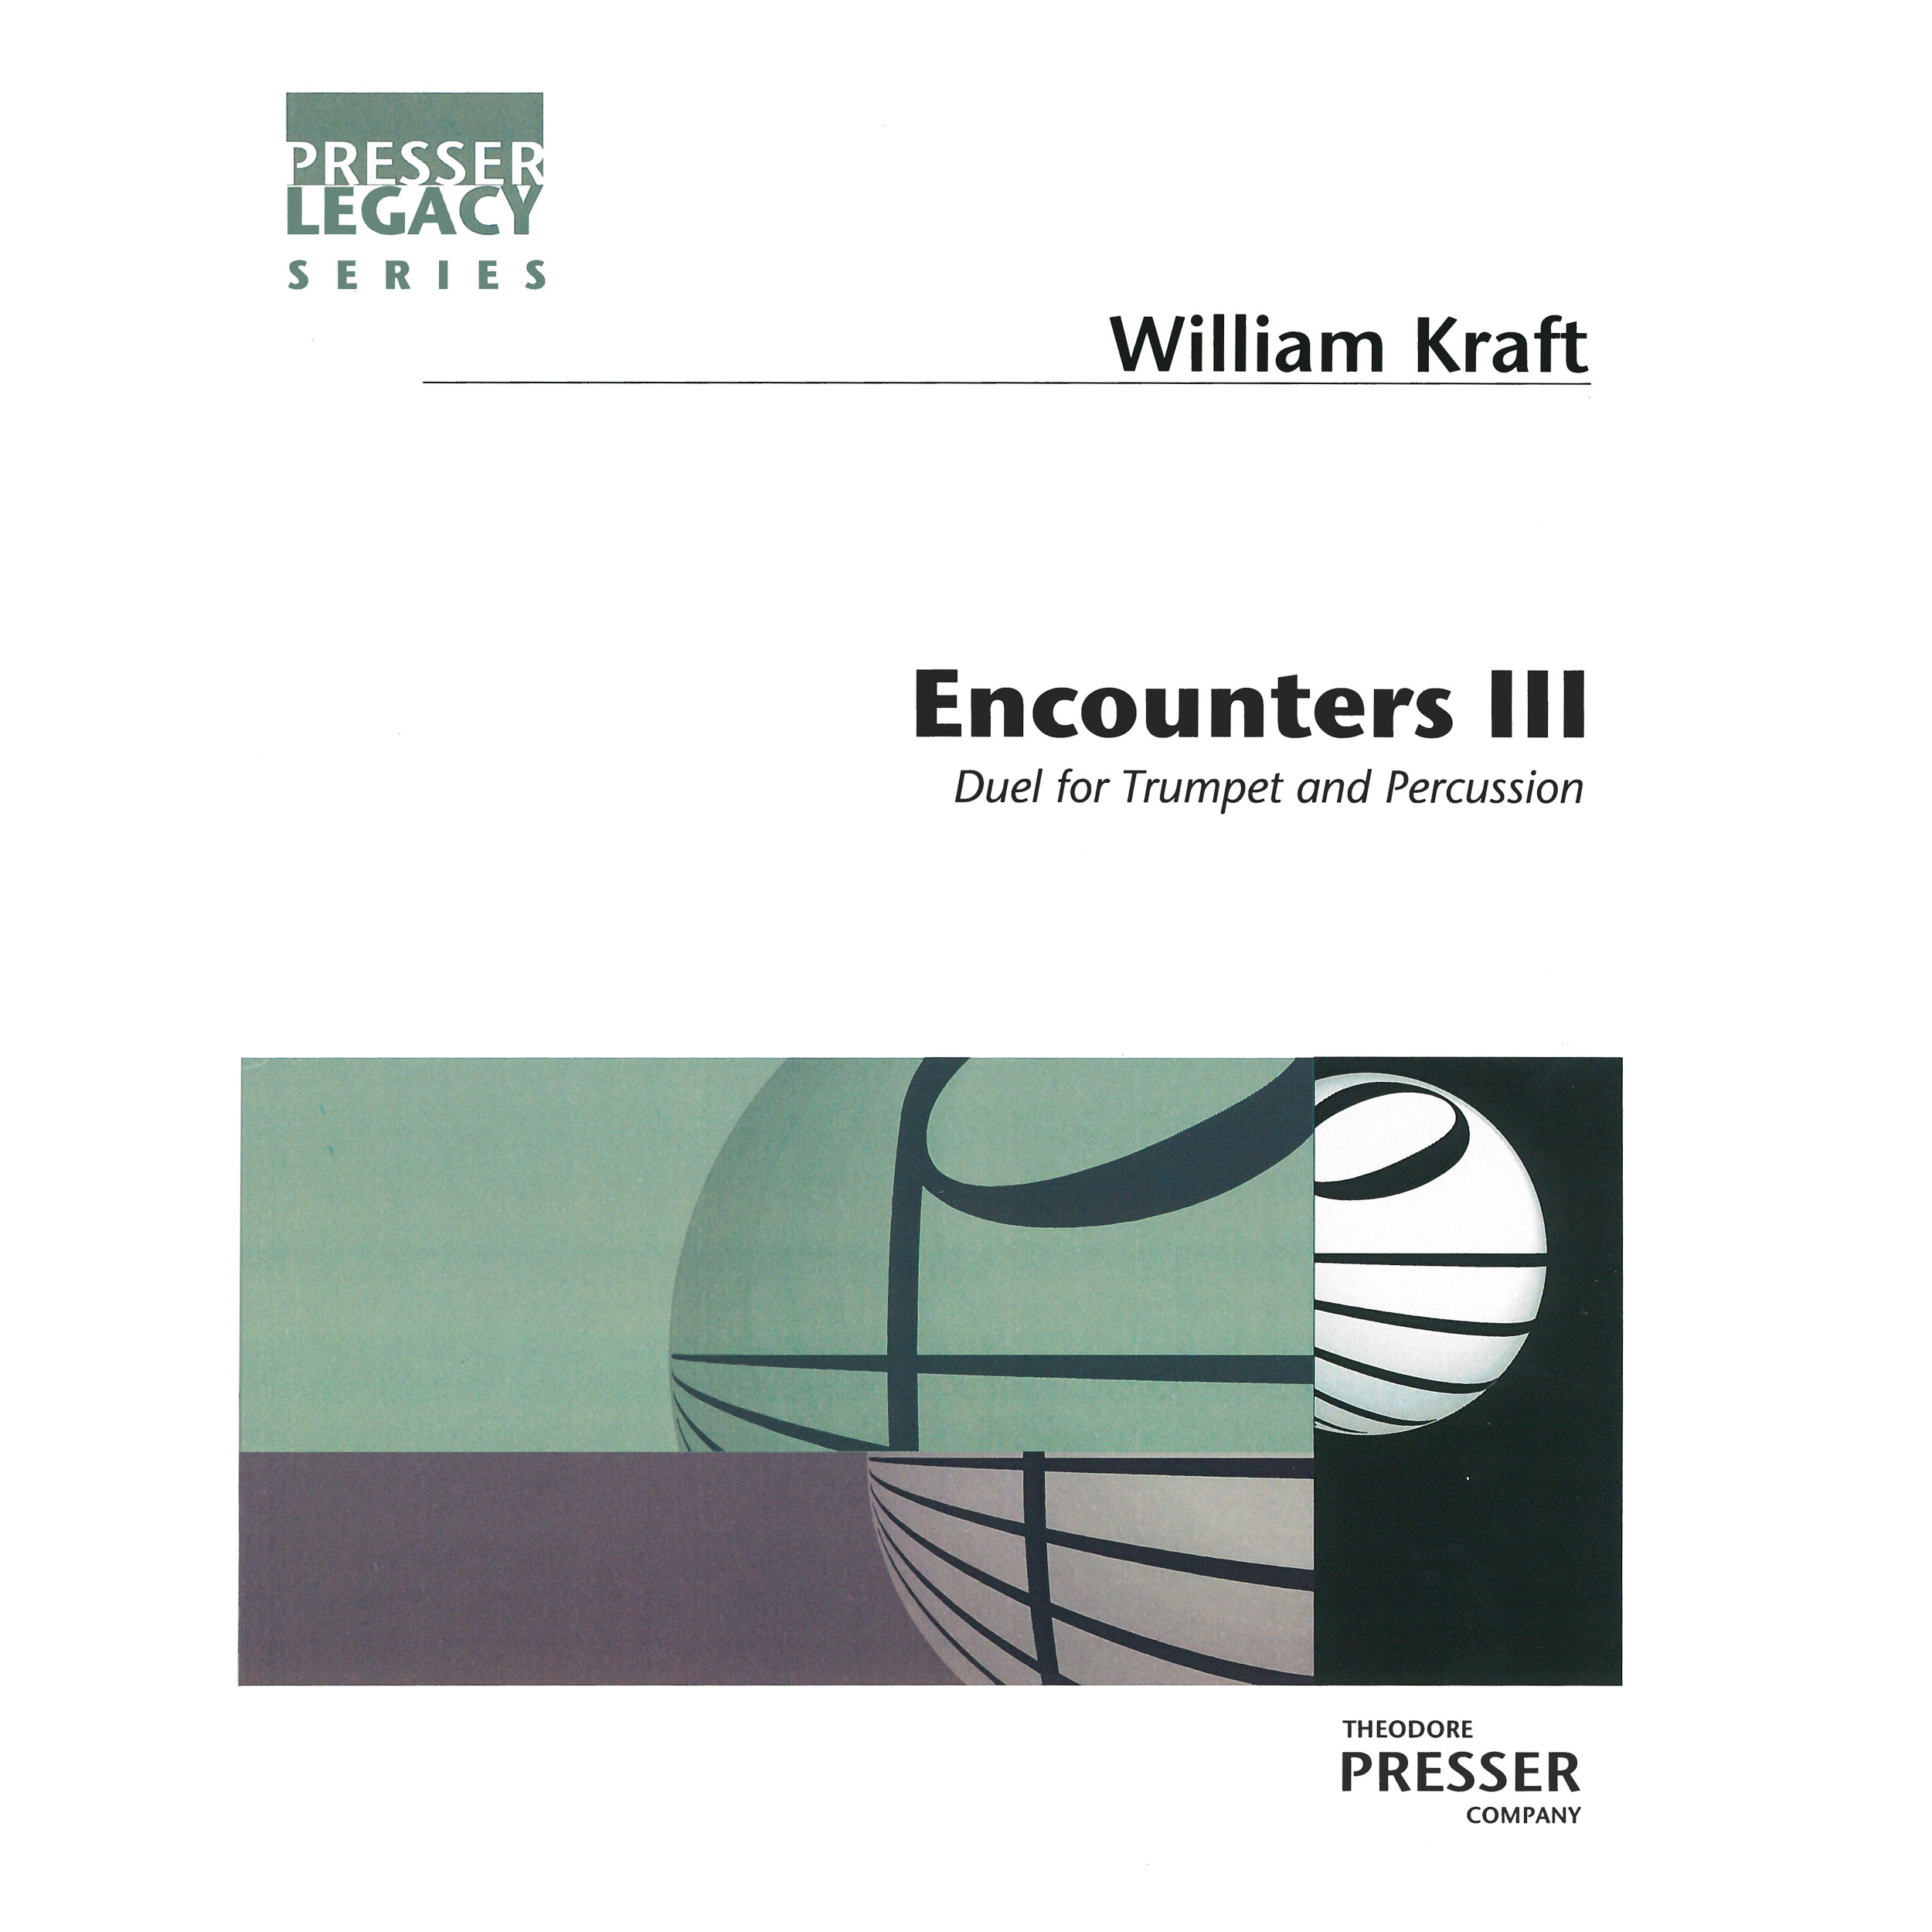 Encounters III by William Kraft